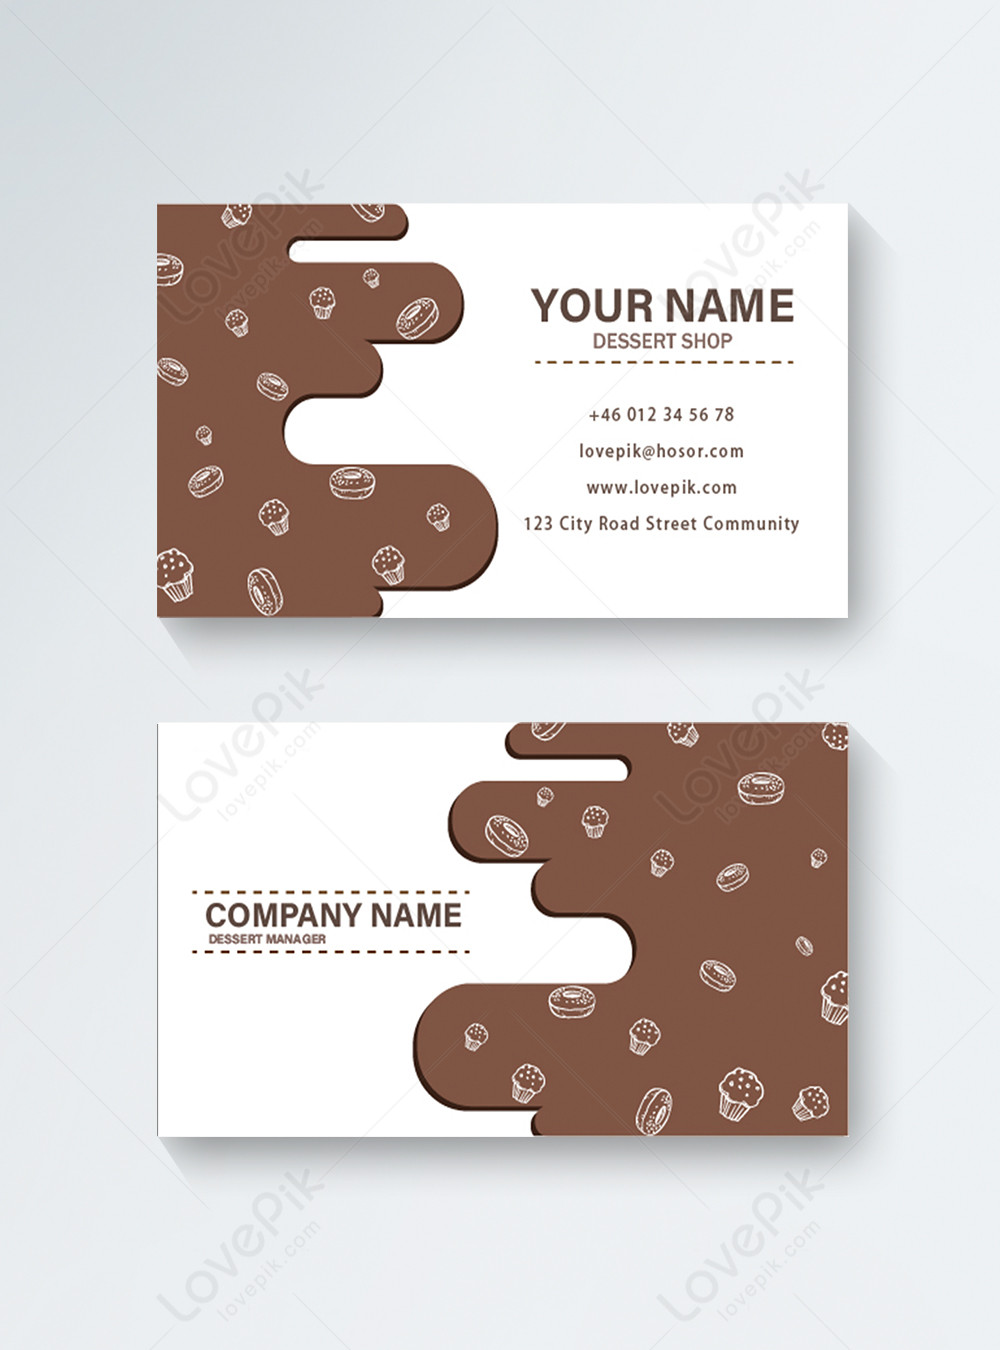 Chocolate Cake Dessert Business Card Template Image Picture Free Download 450001179 Lovepik Com